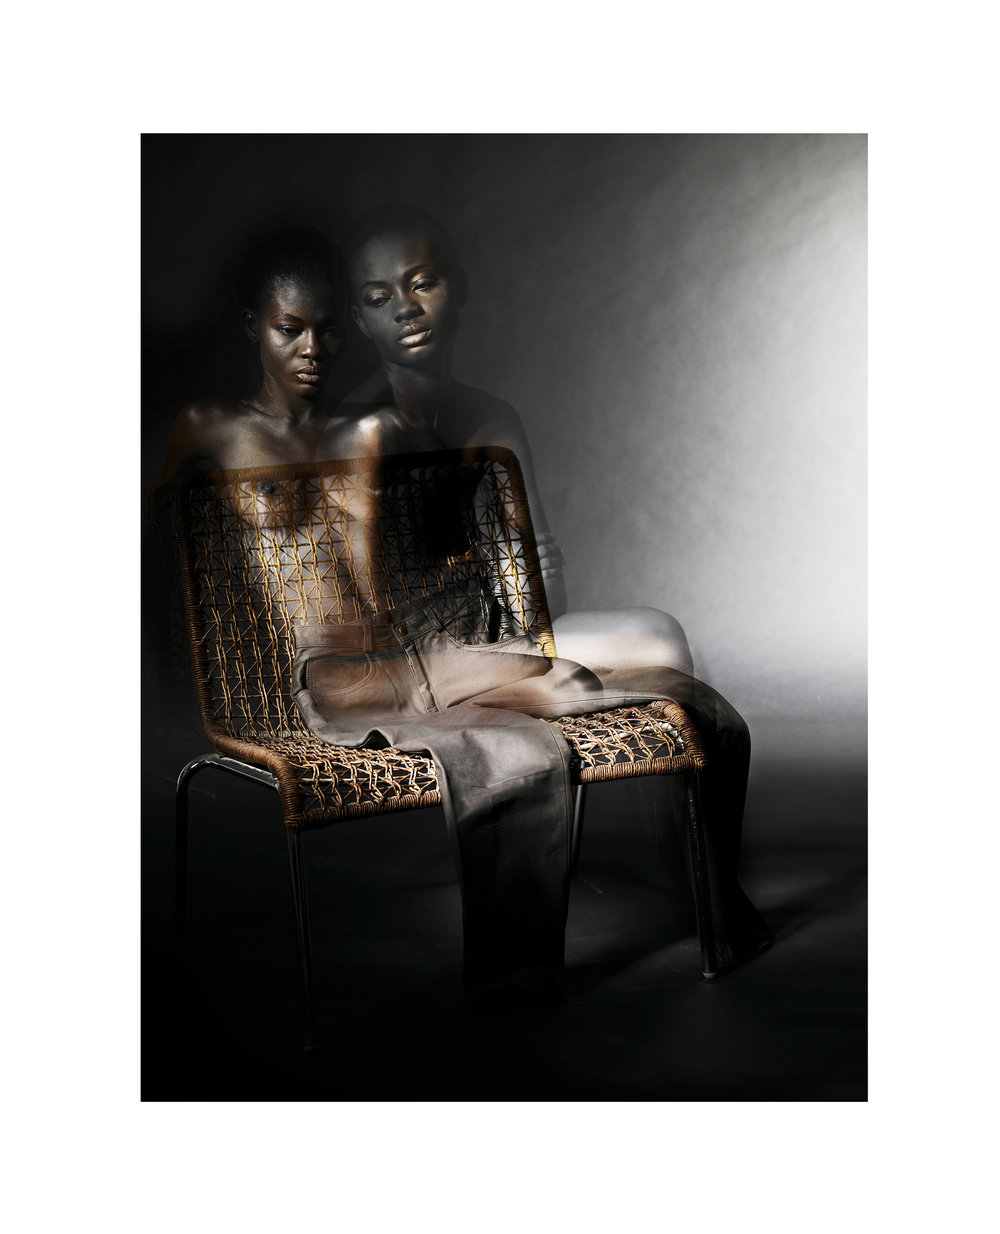 ' Composure '   Malcolm Dare  Archival Print on Hahnemuhle Photo Rag  1285 x 950 x 60 mm   R 25 000.00 excl. vat